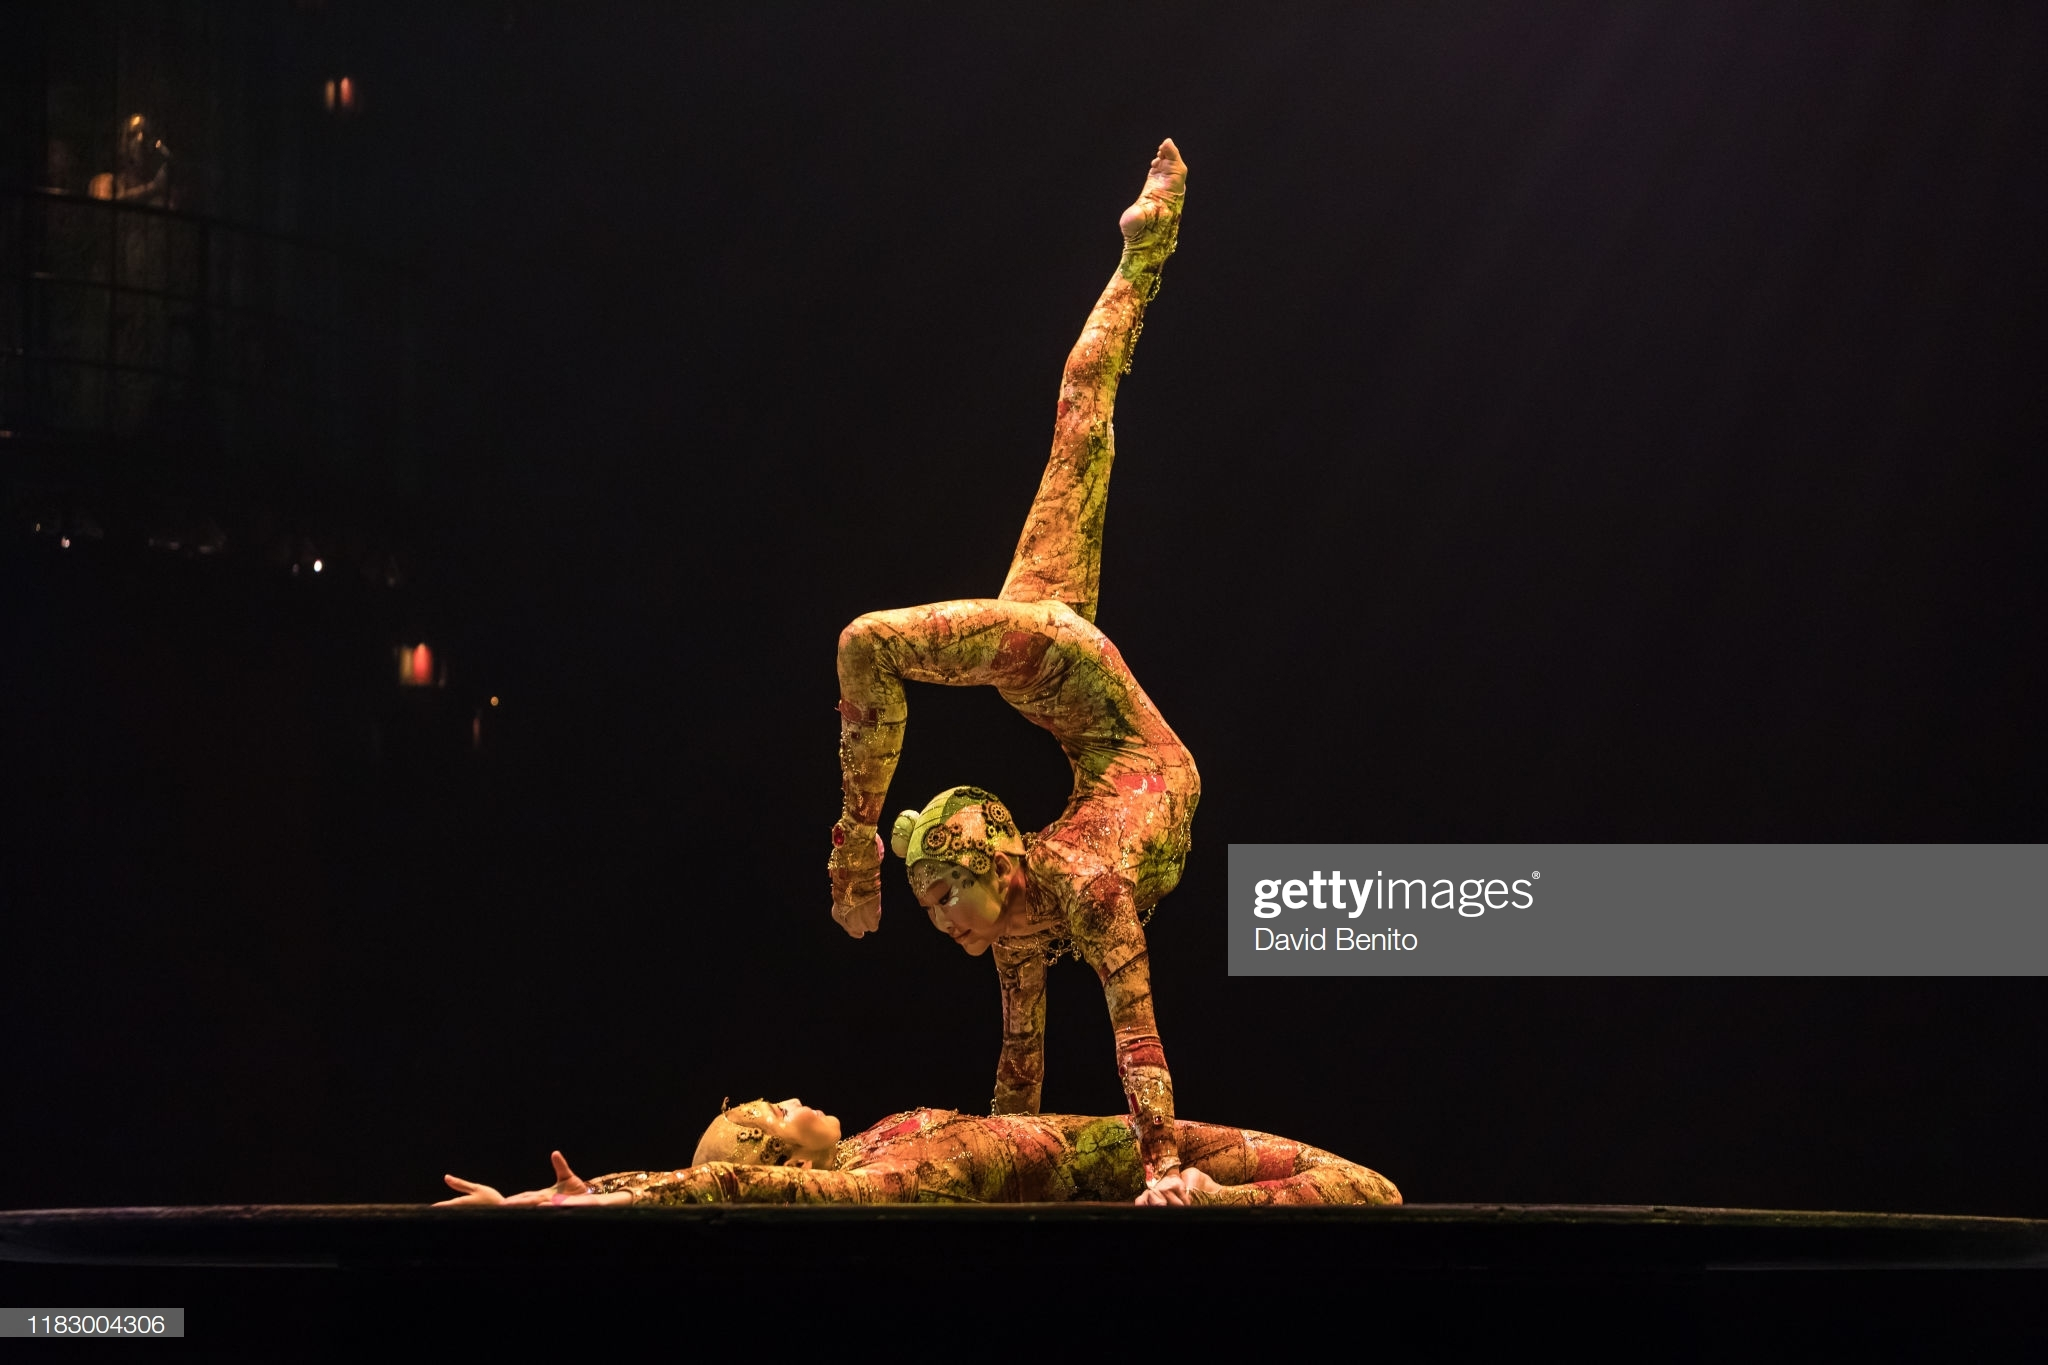 gettyimages-1183004306-2048x2048